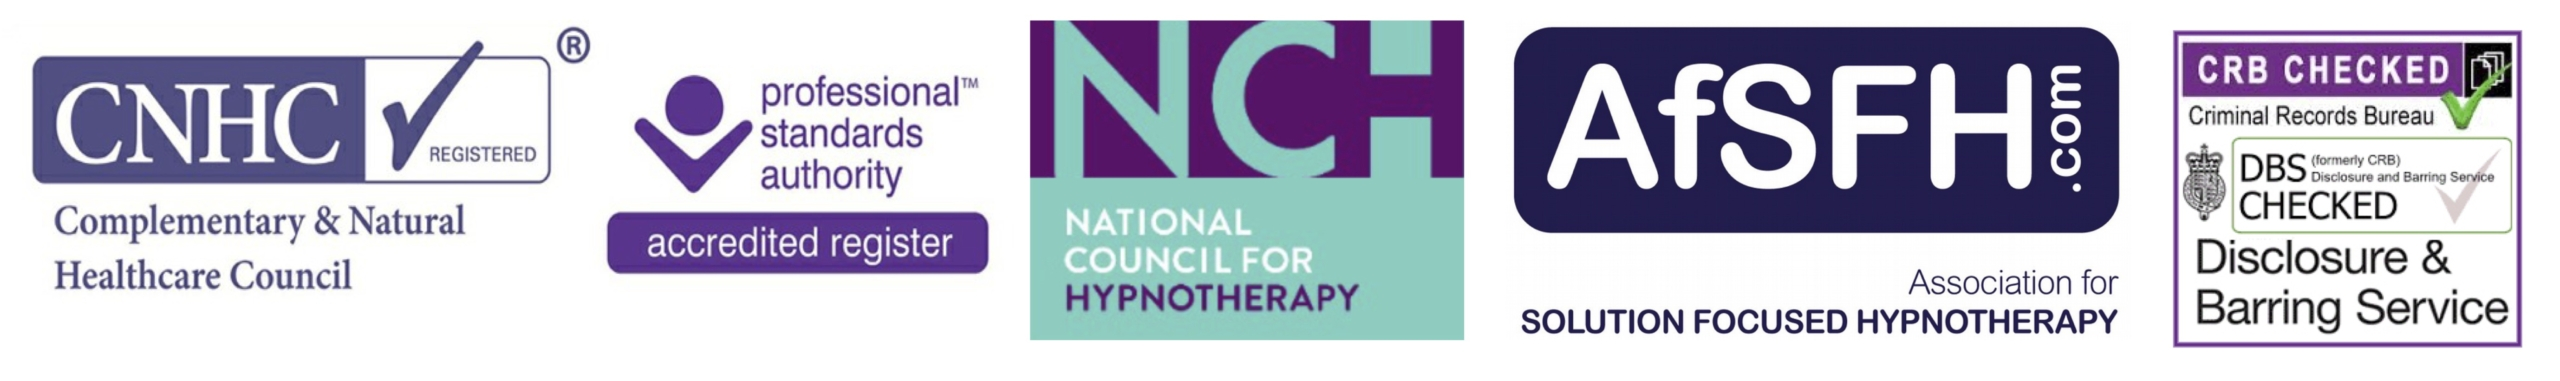 This is a row of logos from the professional bodies we are members of: The CNHC (Complementary & Natural Healthcare Council), The Professional Standards Register, The National Council for Hypnotherapy, The Association for Solution Focused Hypnotherapy and we are DBS-CRB Cleared to work with children and vulnerable adults